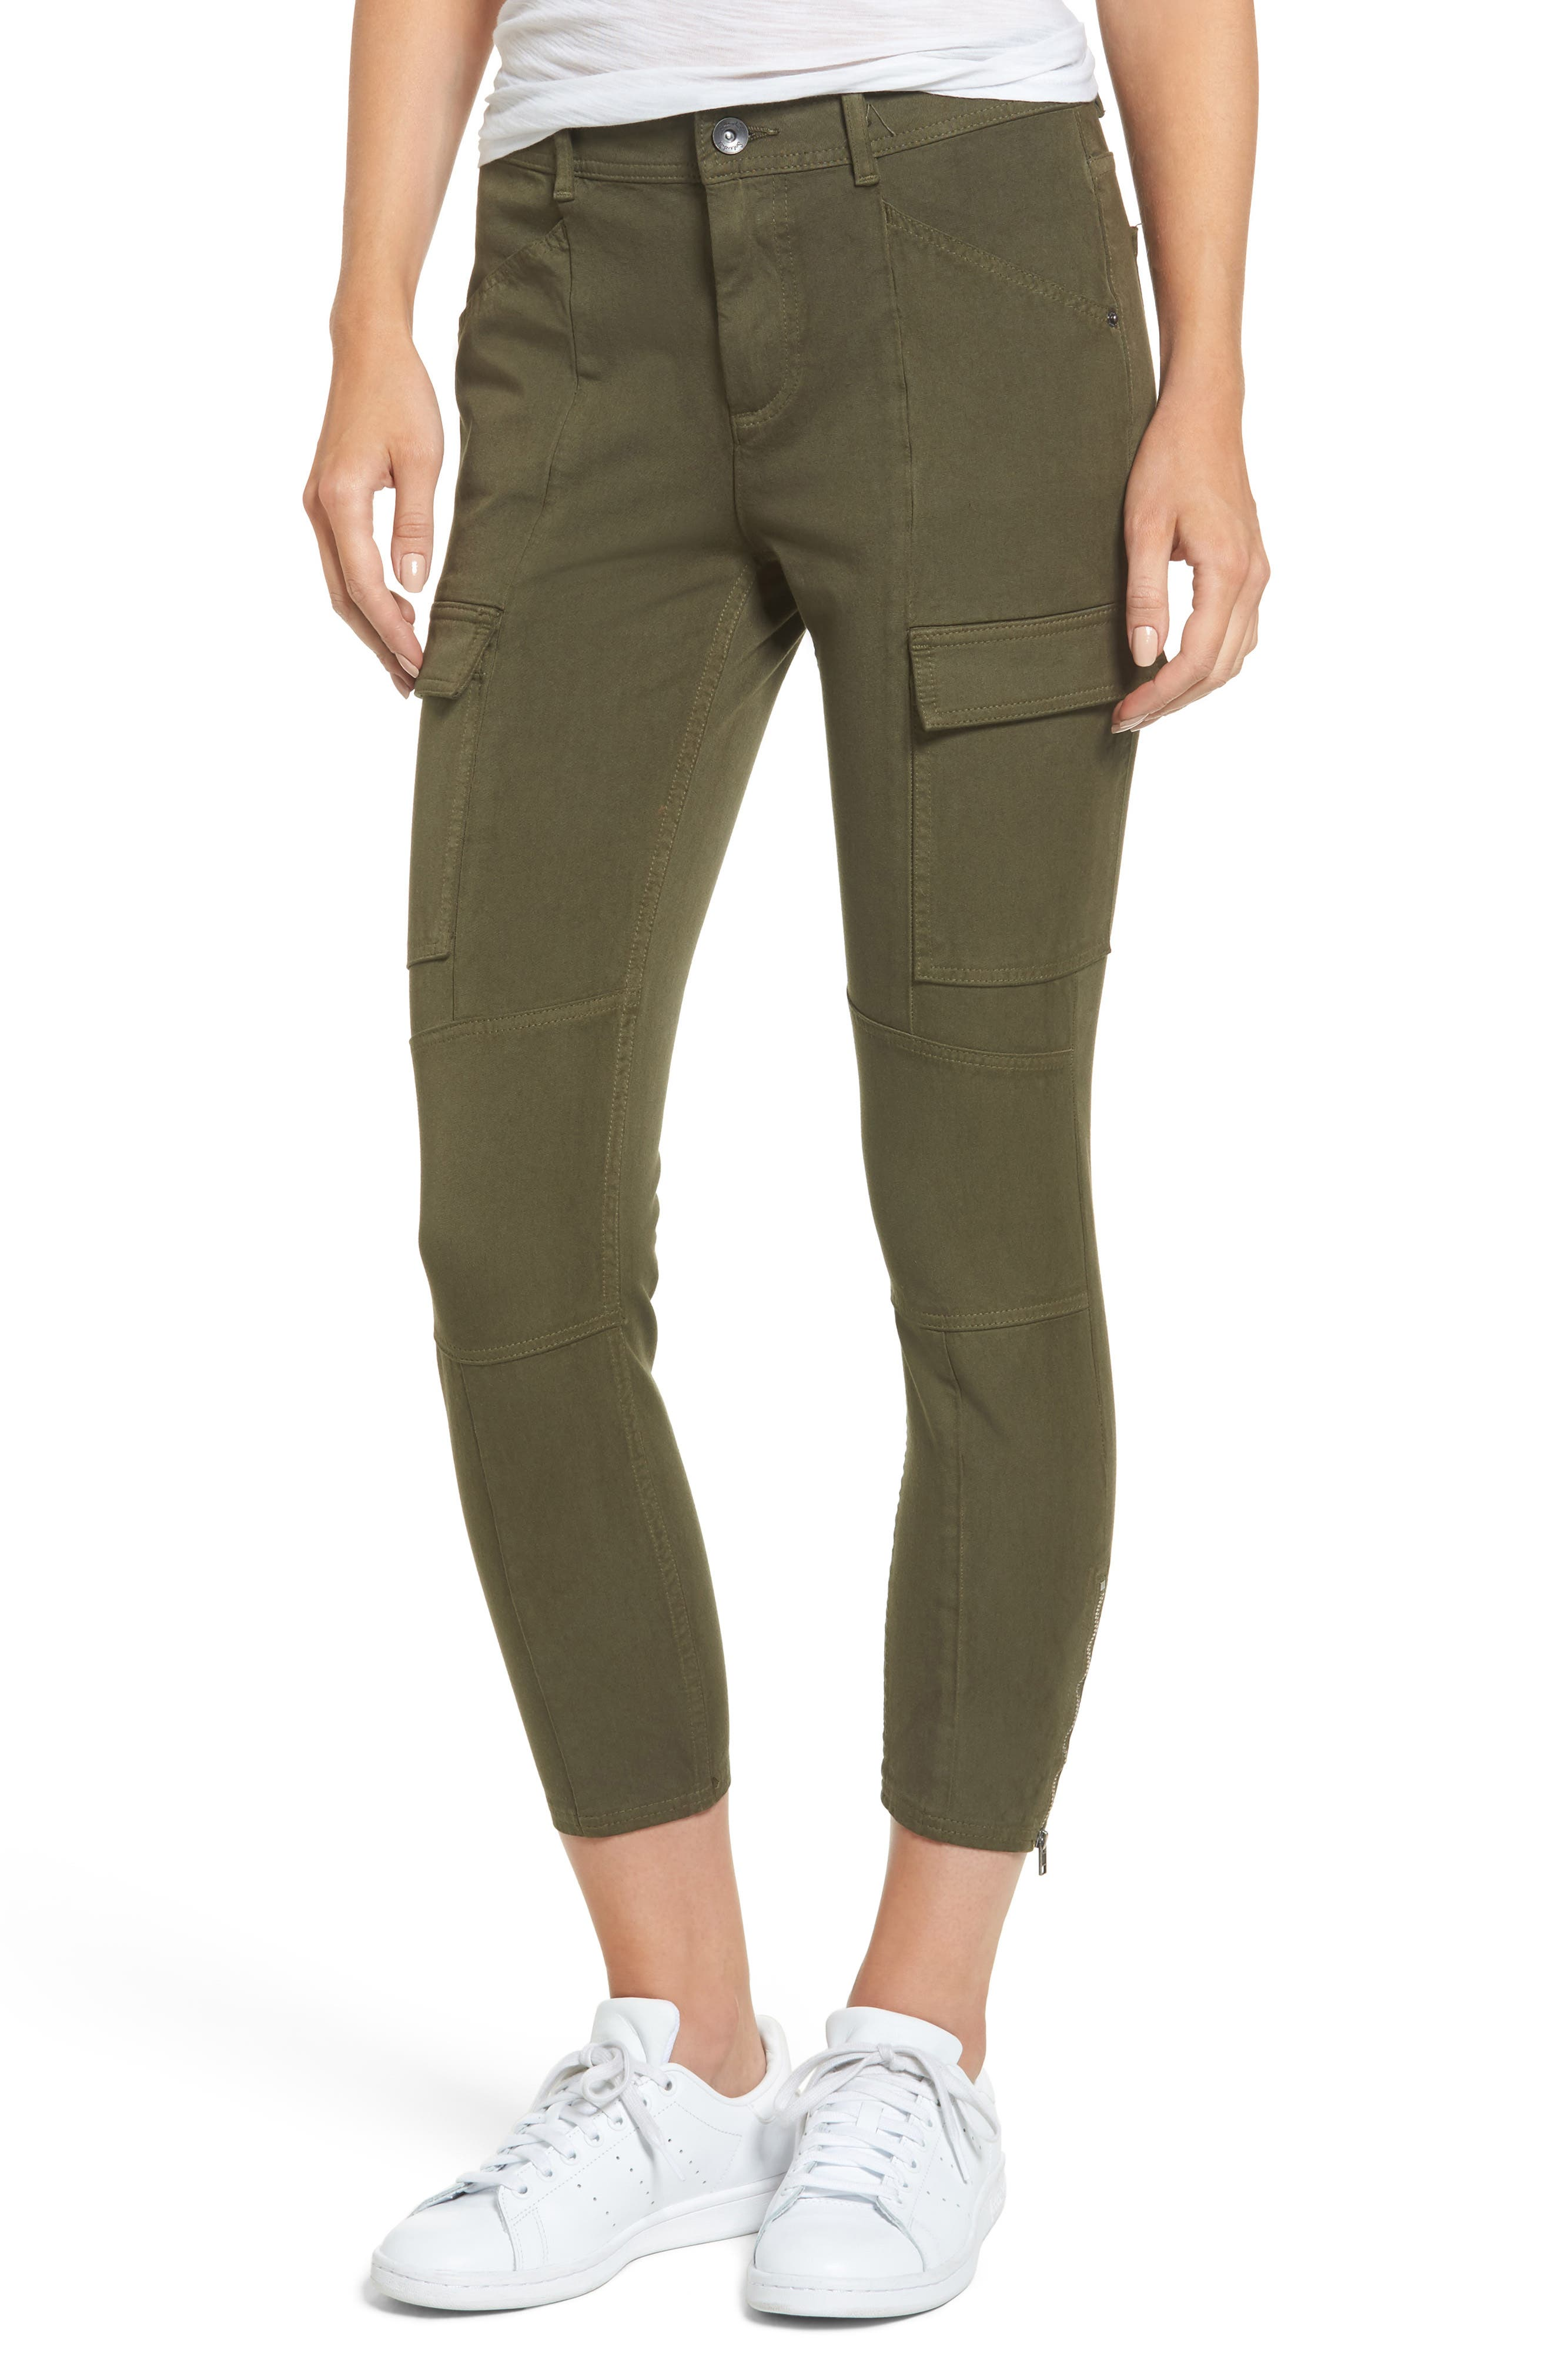 Alternate Image 1 Selected - Splendid Stretch Twill Cargo Pants